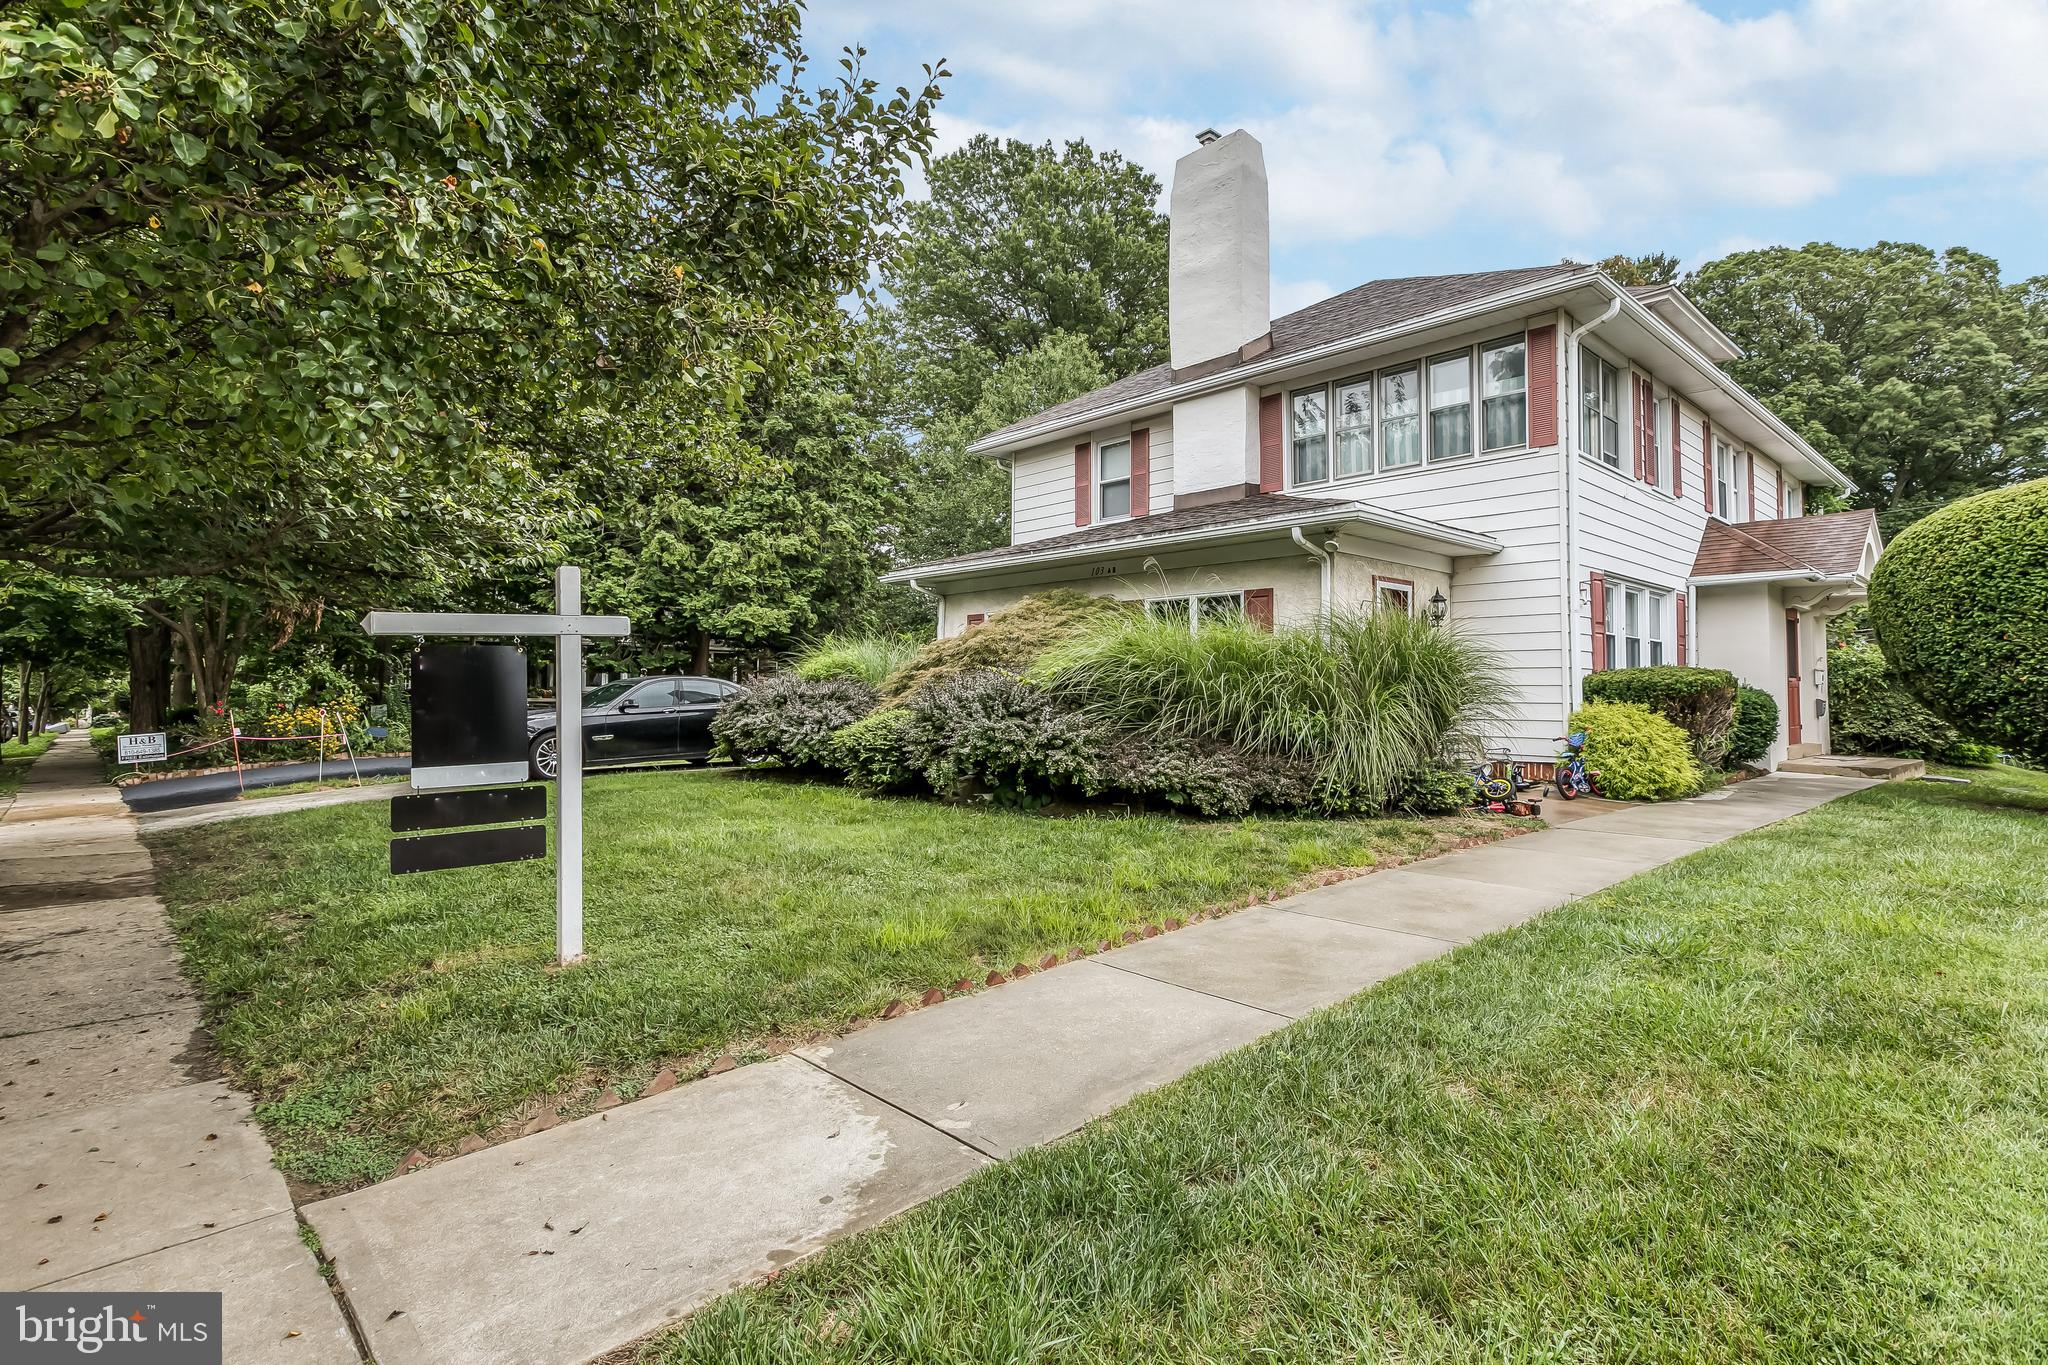 103 LLANDAFF ROAD, HAVERTOWN, PA 19083